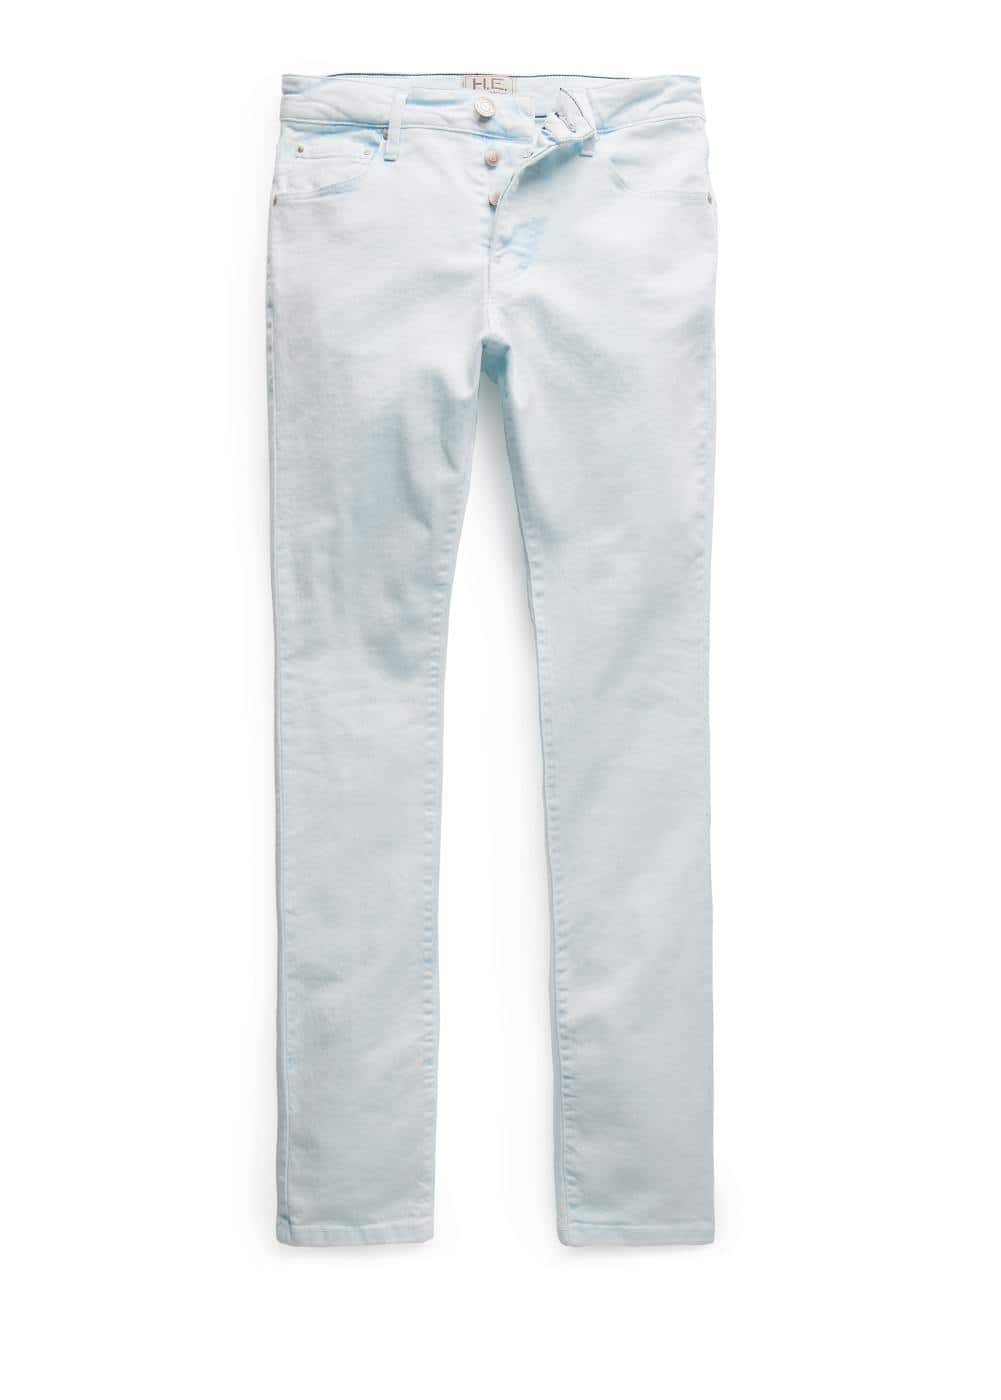 Jeans Tim slim-fit lavado bleach